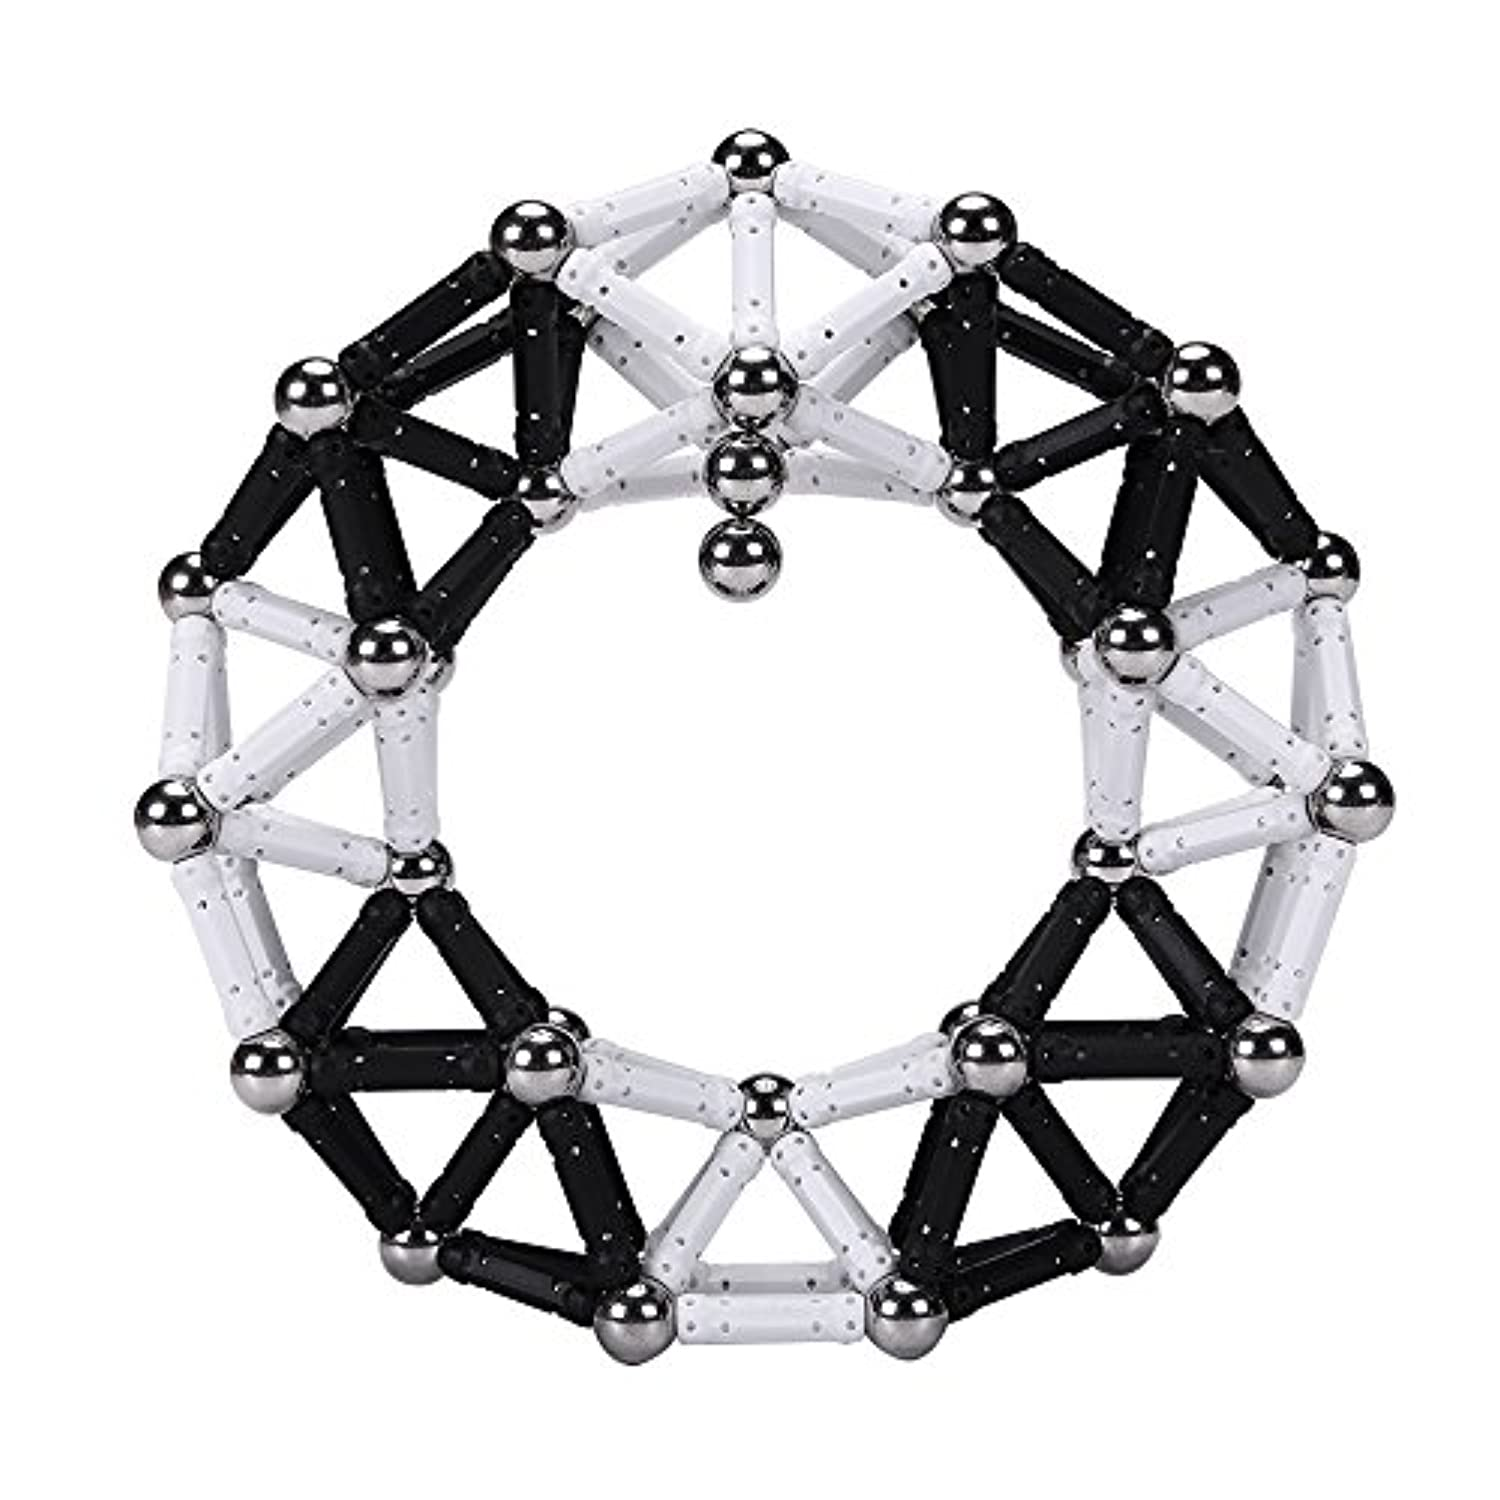 playmaty 170ピースConstruction Toys Magnetic Building BlocksセットToy withマグネットSticks for Boys and Girls Playing Stacking Game